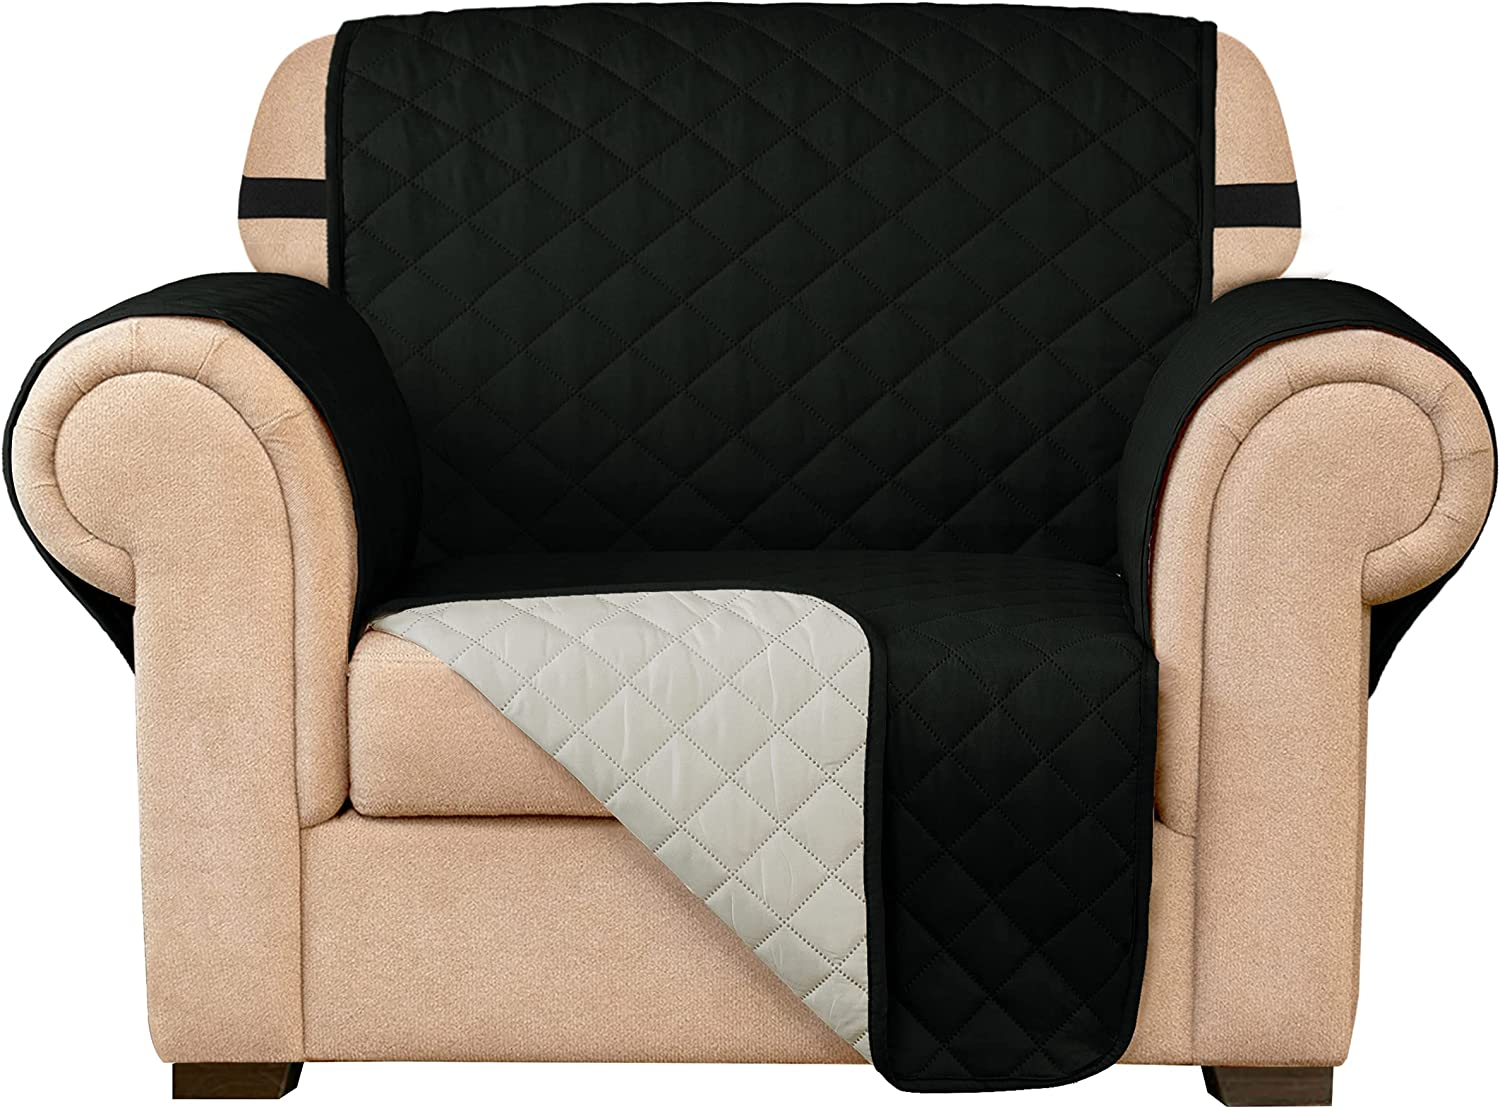 Subrtex Sofa Slipcover Reversible Chair Cover Quilted Couch Cover Furniture Protector with Elastic Straps in Living Room Washable Slip Cover for Pets Kids Dogs (Chair, Black)